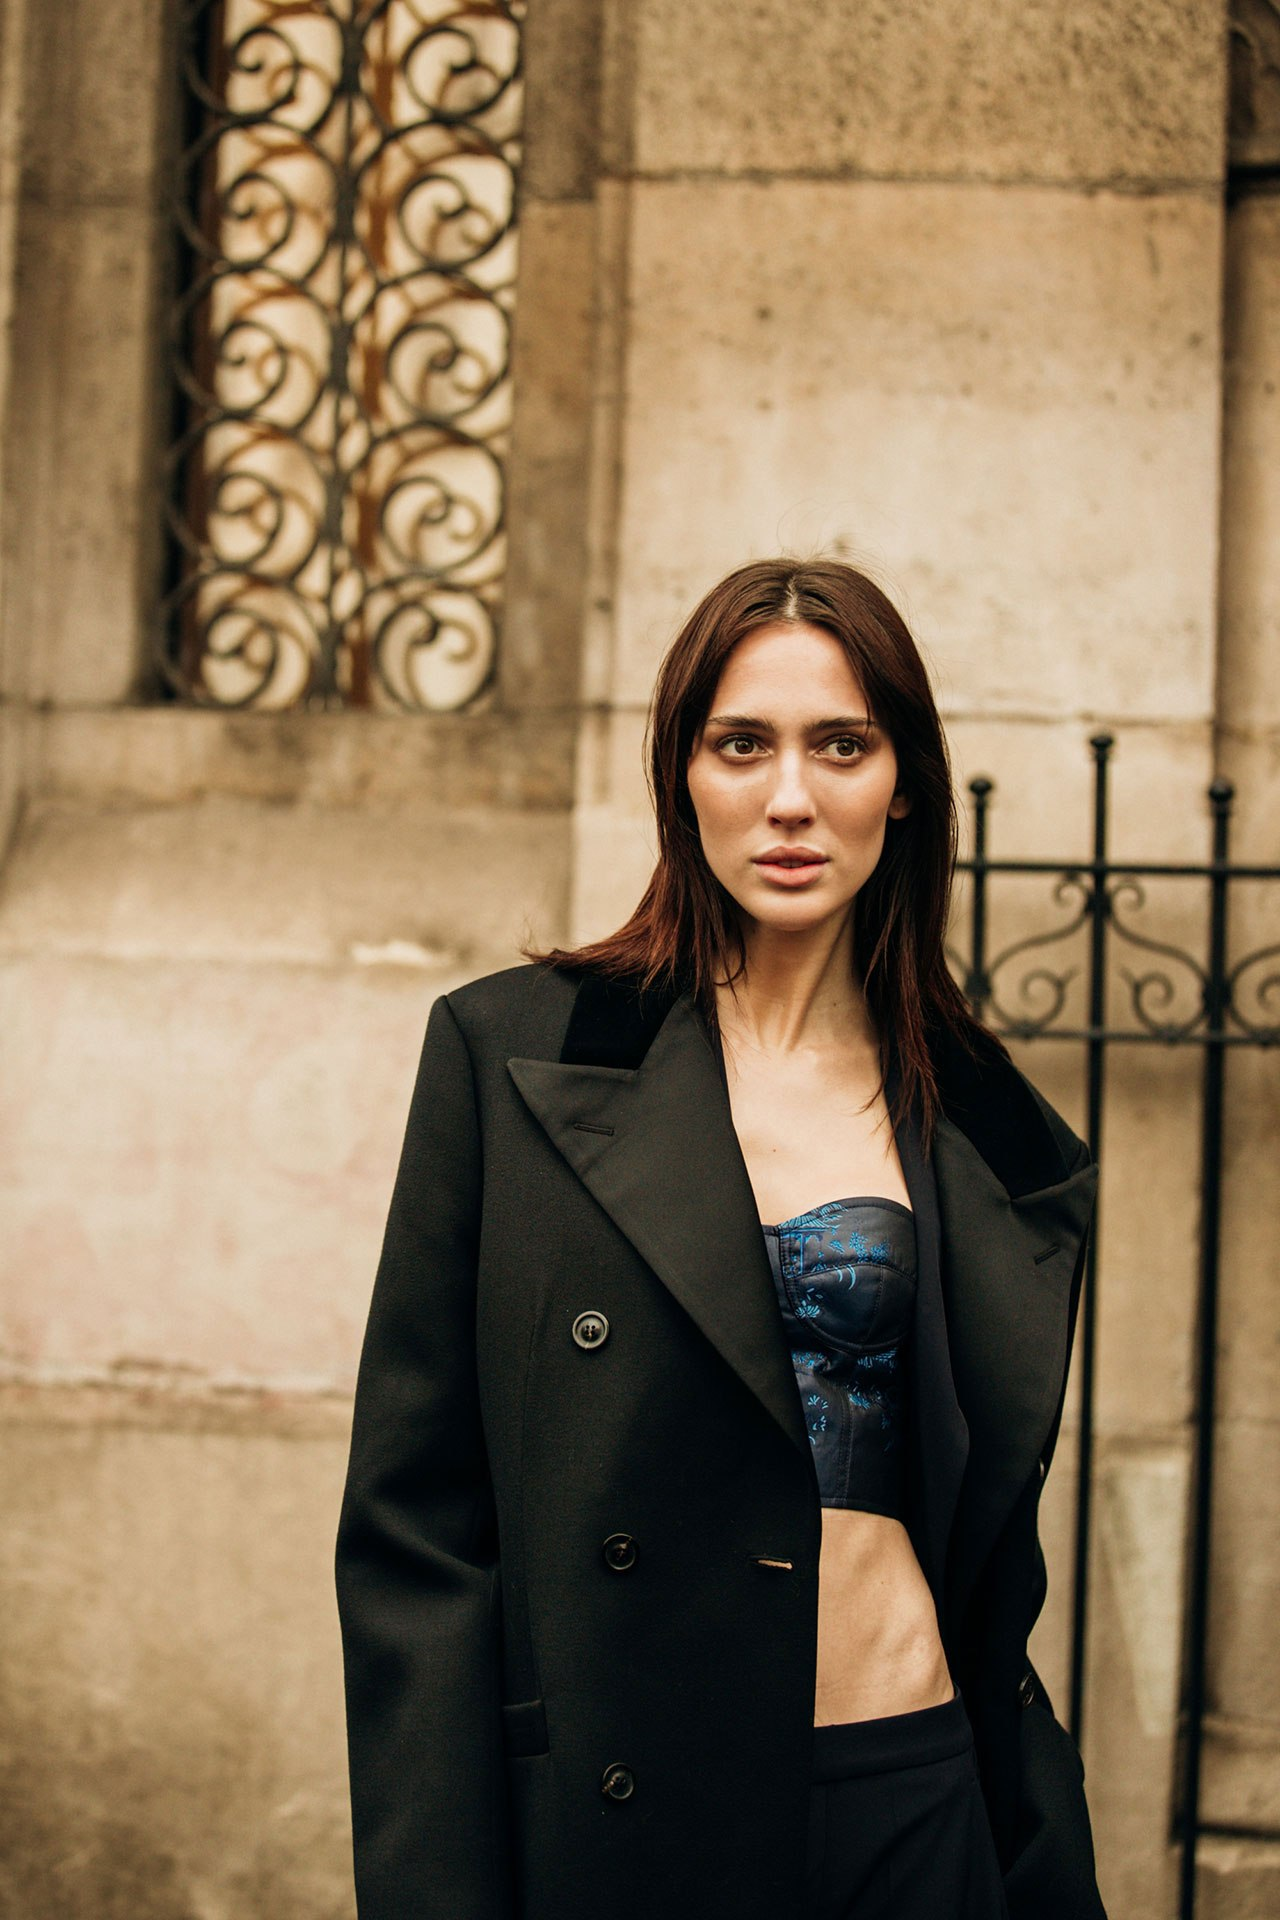 Transgender model Teddy Quinlivan on what her new role with Chanel means for the trans community